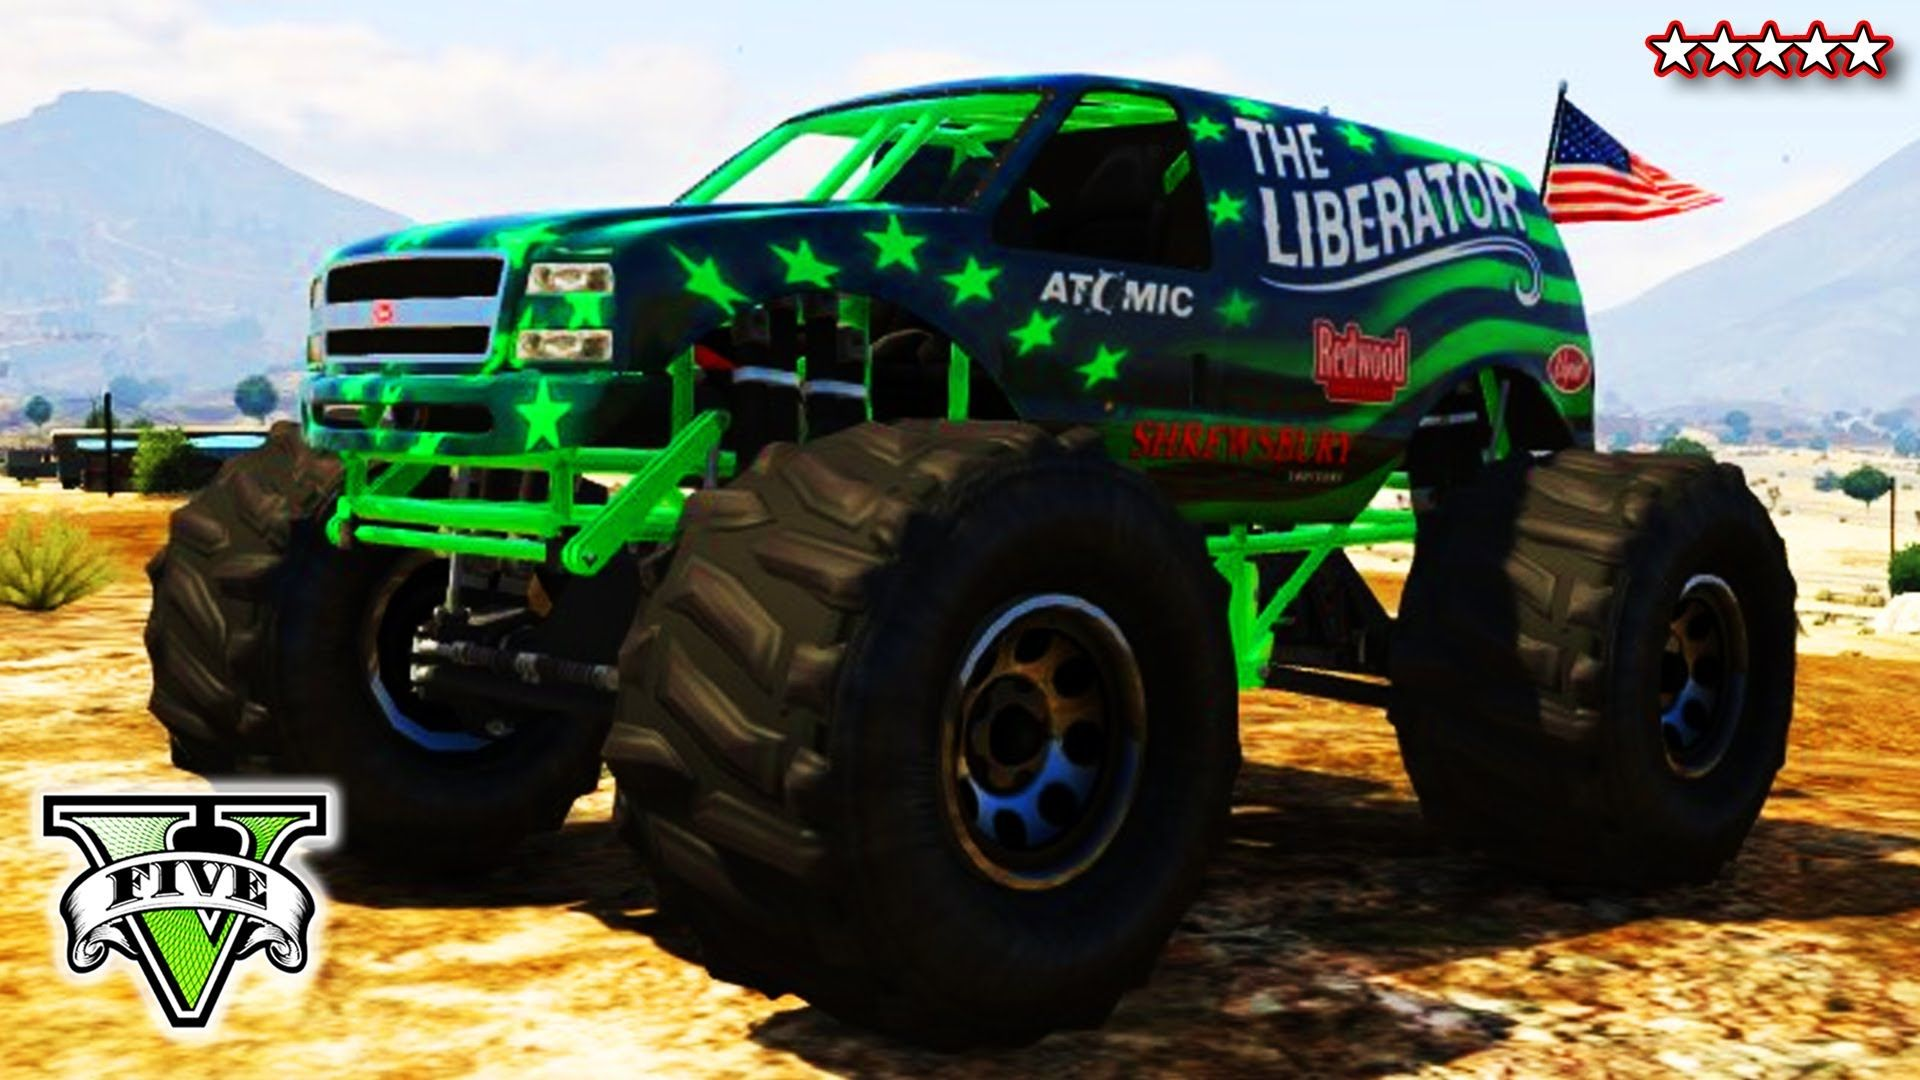 Gta 5 Liberating Mount Chiliad Epic Gta Monster Truck Climb